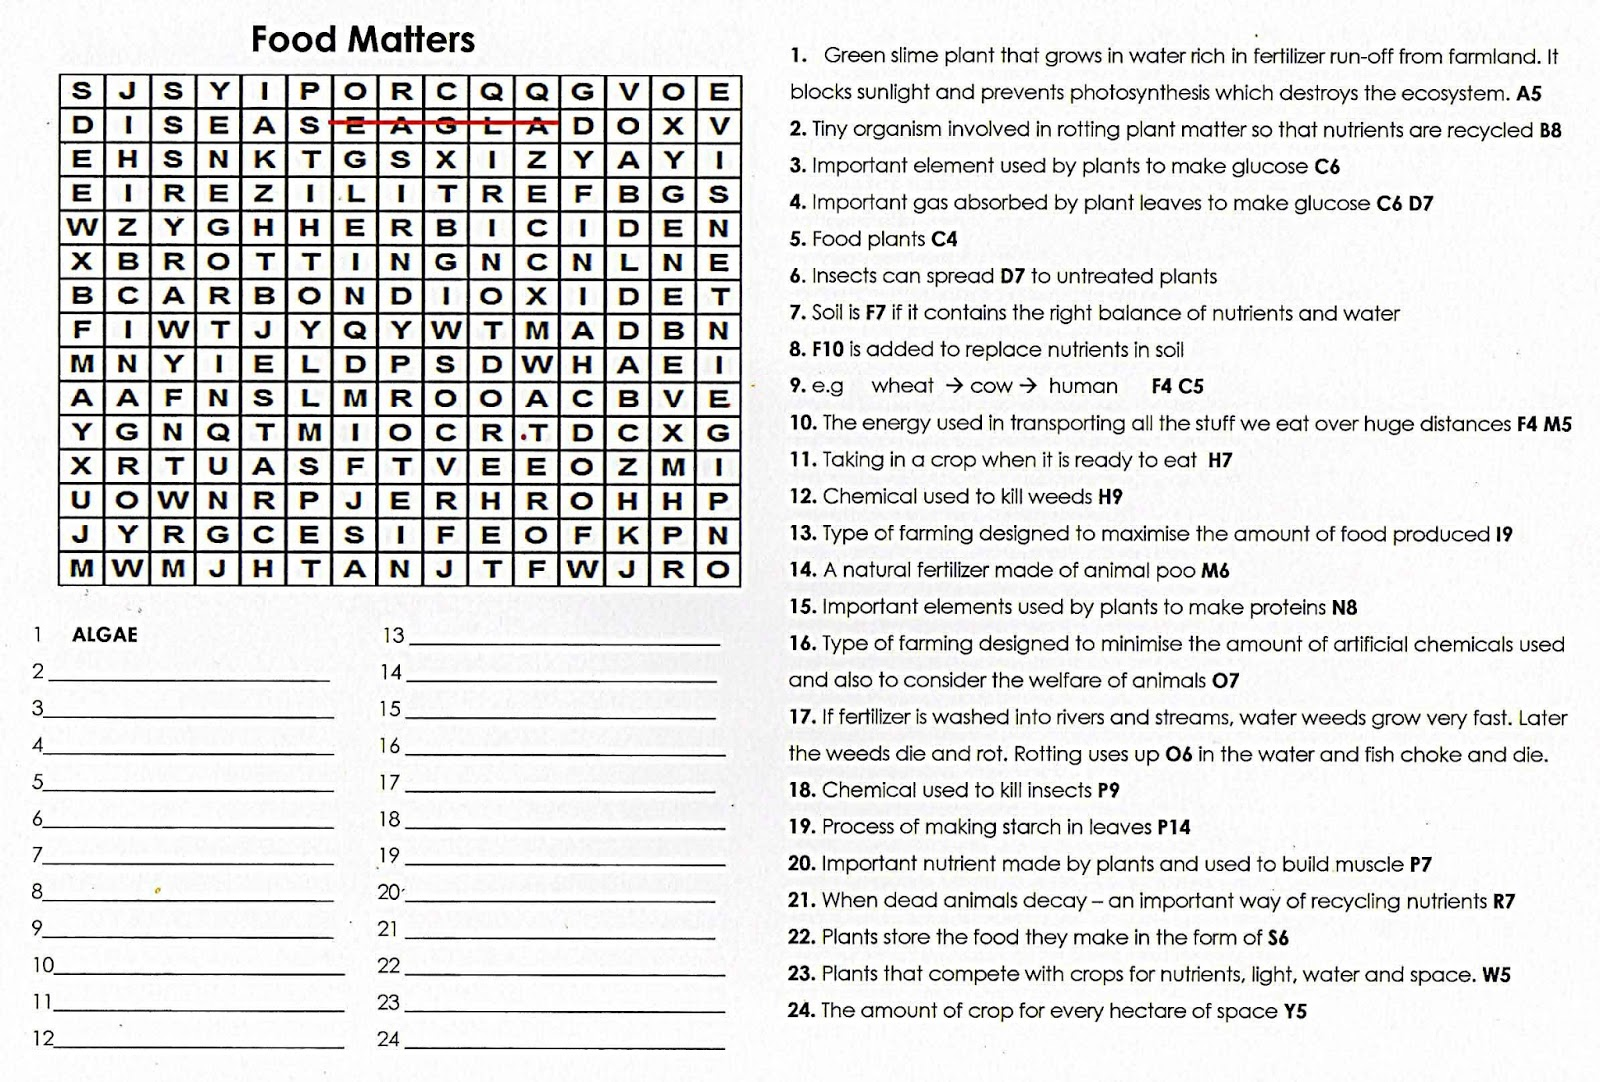 100 Free Science Worksheets QUIZ WORDSEARCH Food Matters – Free Science Worksheets